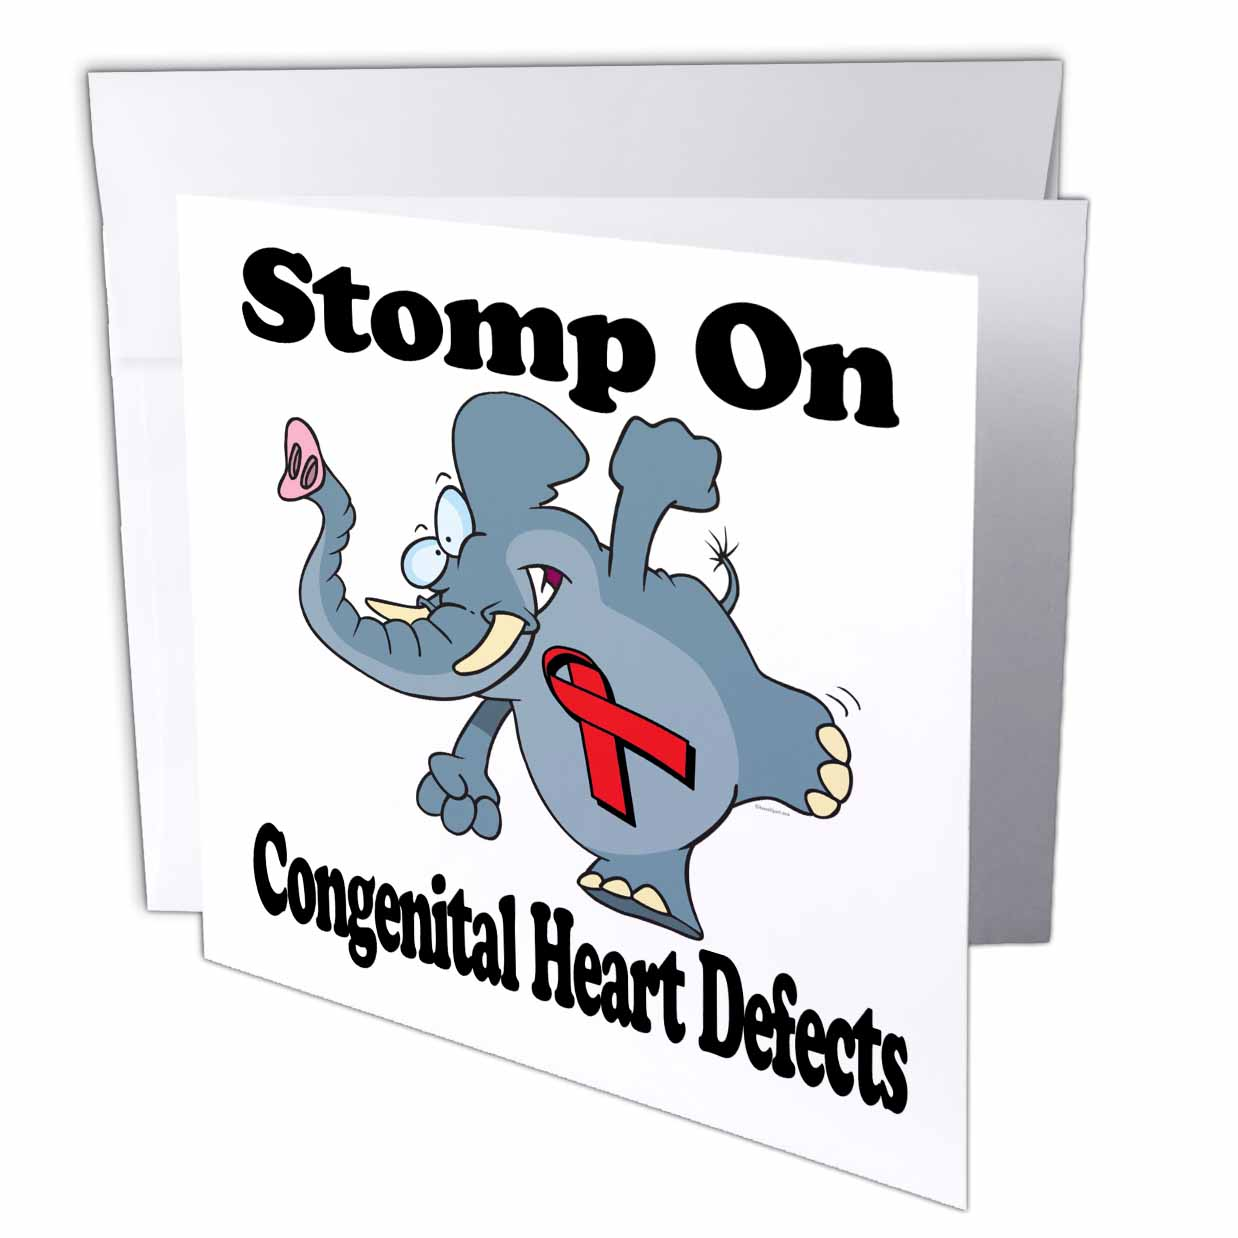 3dRose Elephant Stomp On Congenital Heart Defects Awareness Ribbon Cause Design, Greeting Cards, 6 x 6 inches, set of 12